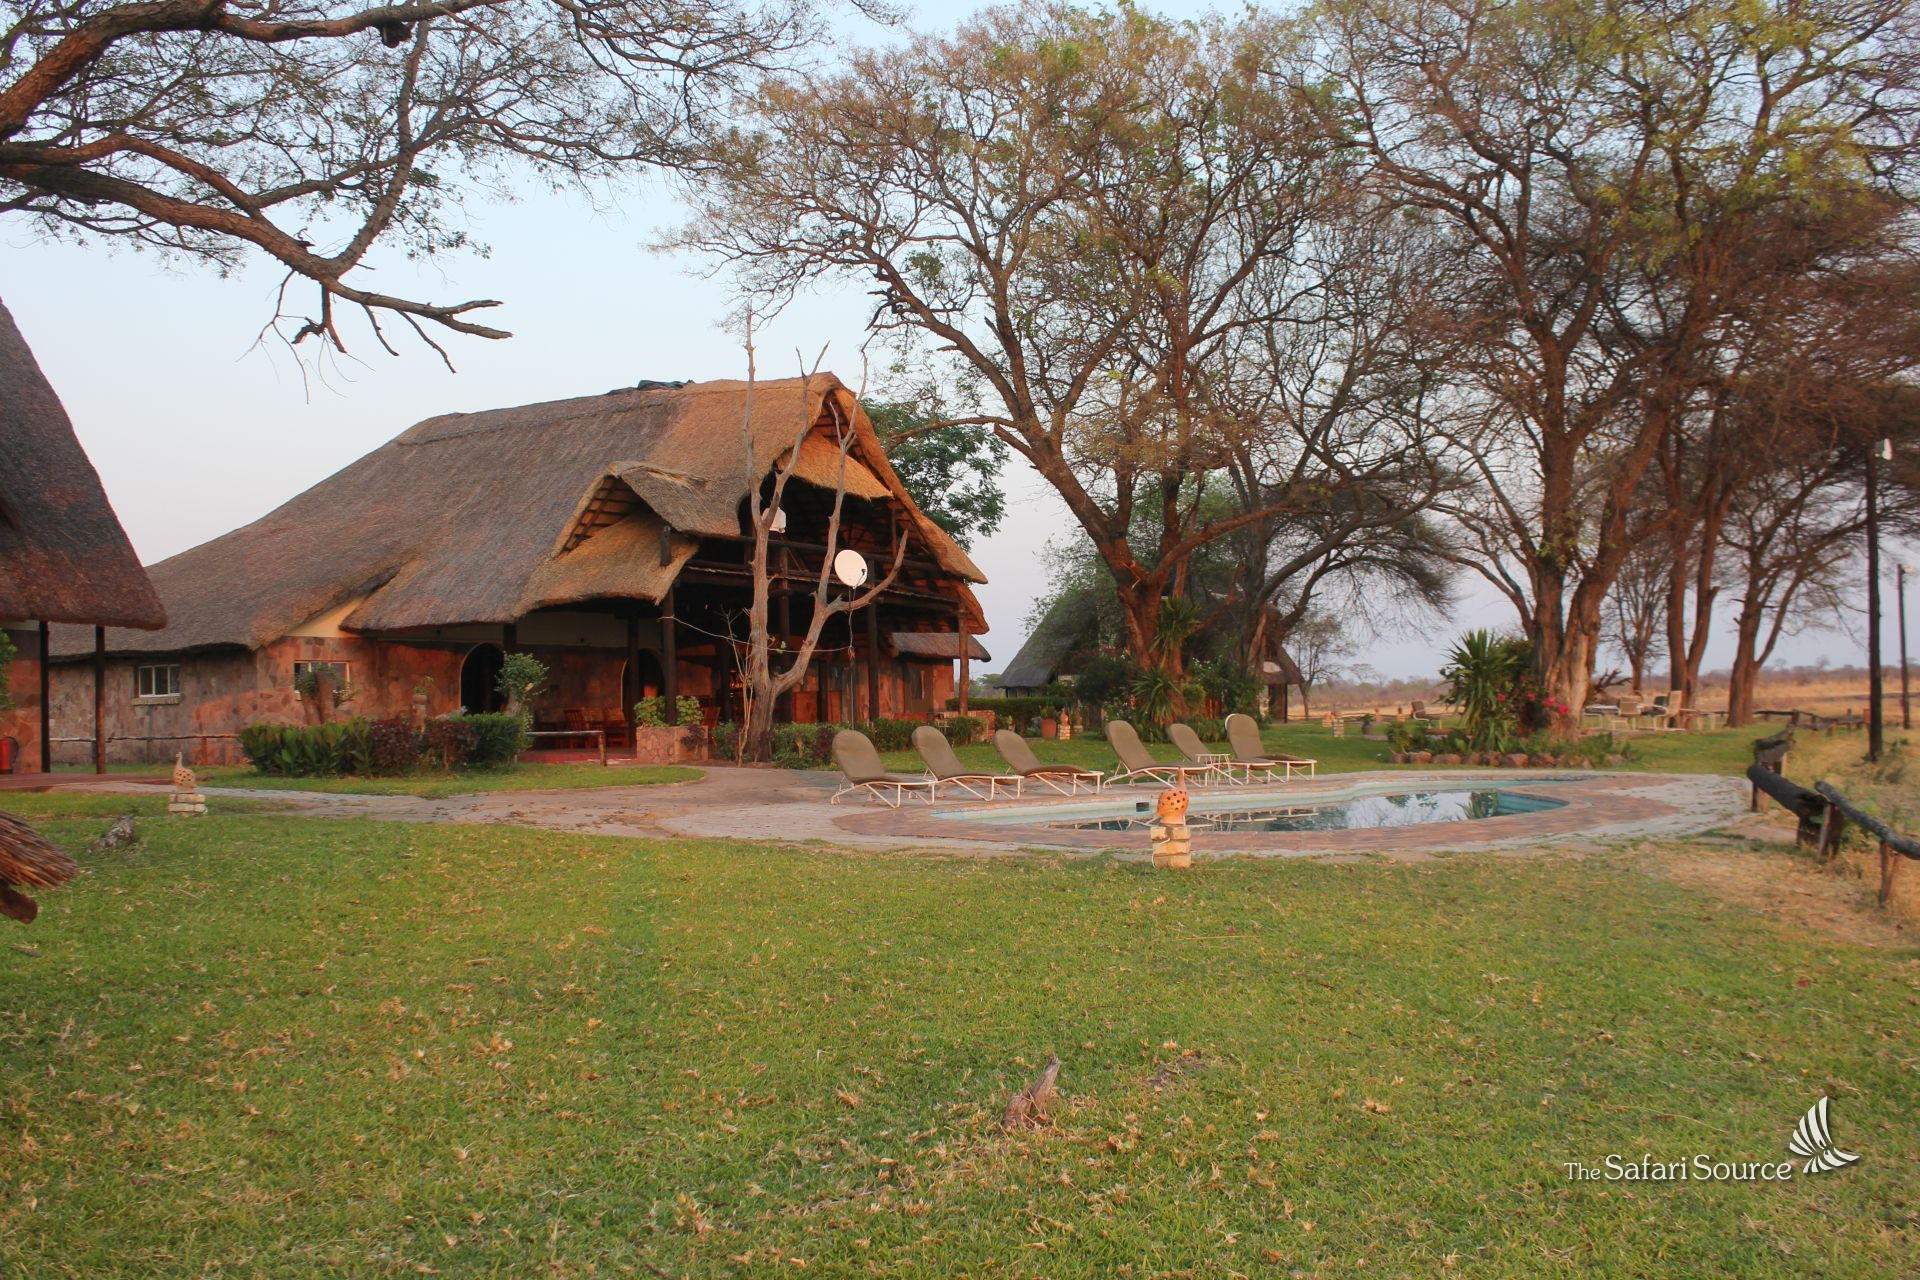 Ganda Lodge in Hwange National Park offers excellent accommodation, Zimbabwe